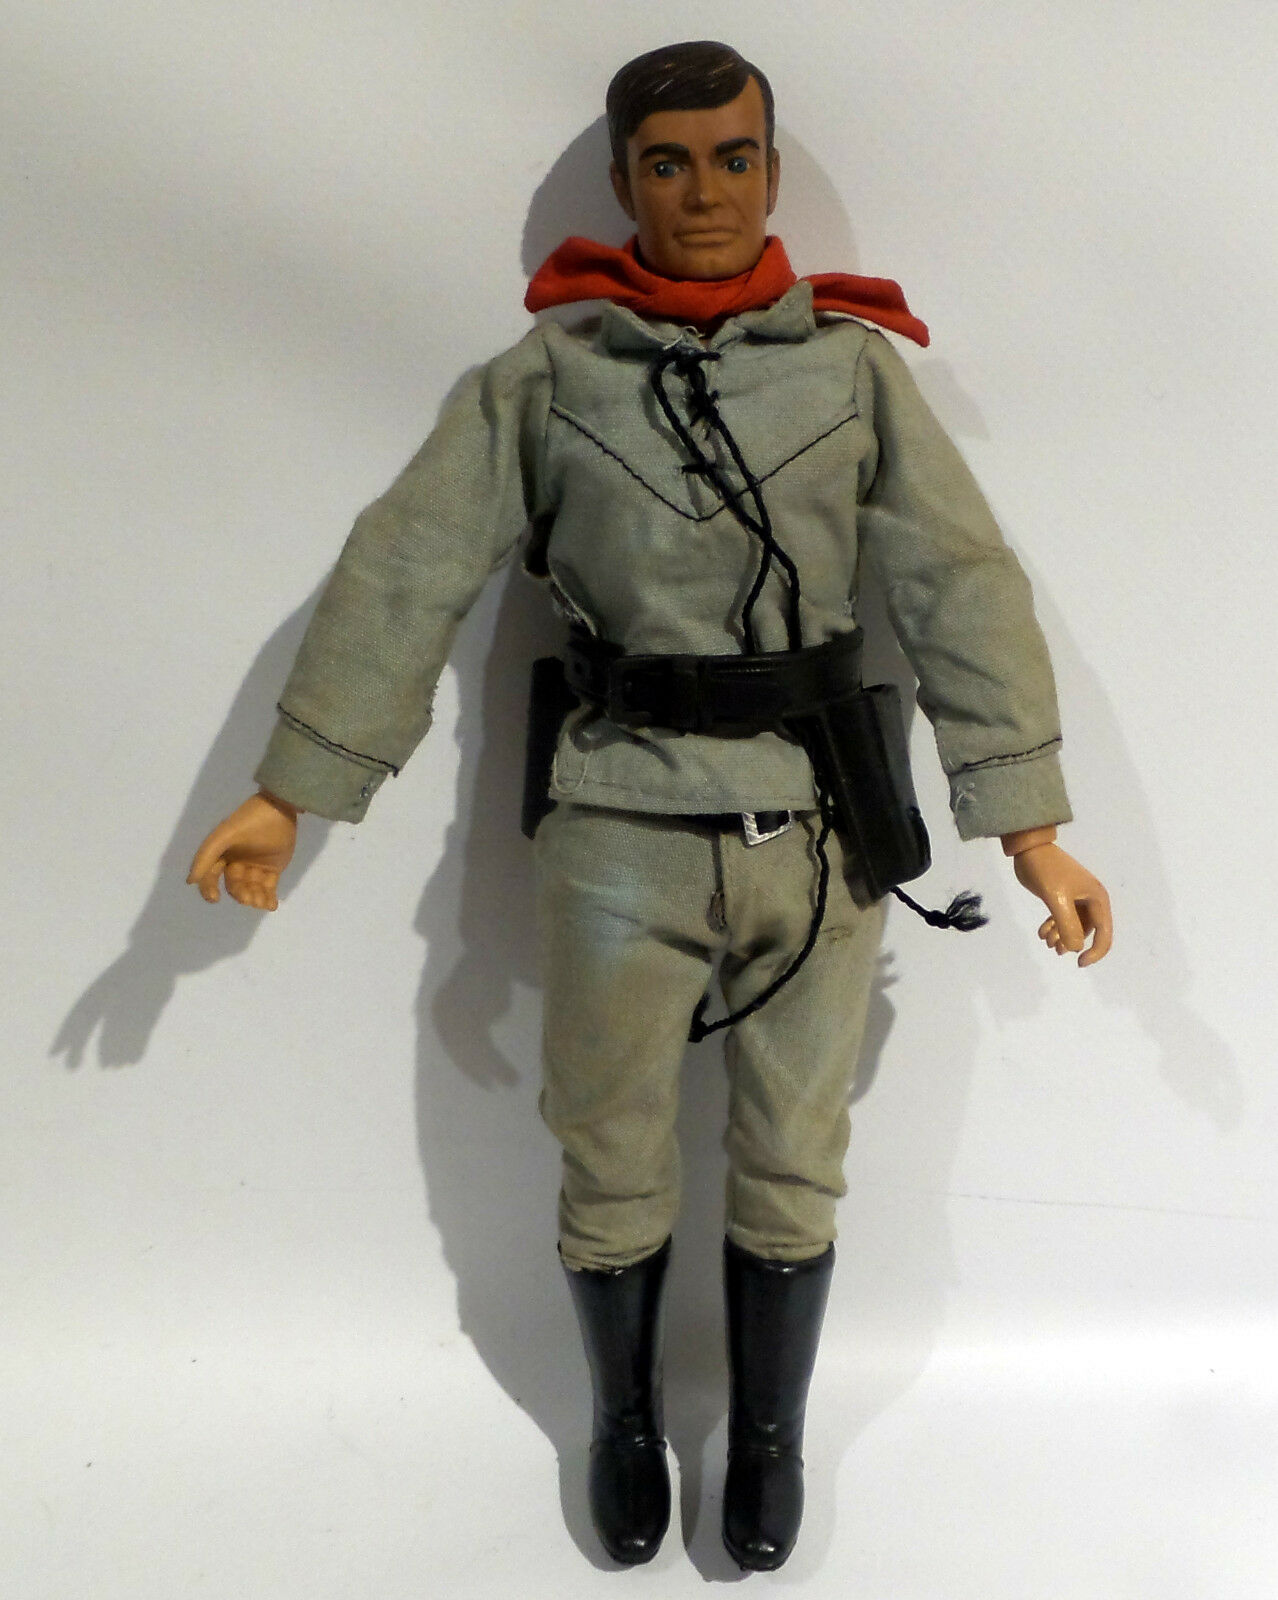 THE LONE RANGER   LONE RANGER ACTION FIGURE MADE BY GABRIEL IN 1973 (SK)